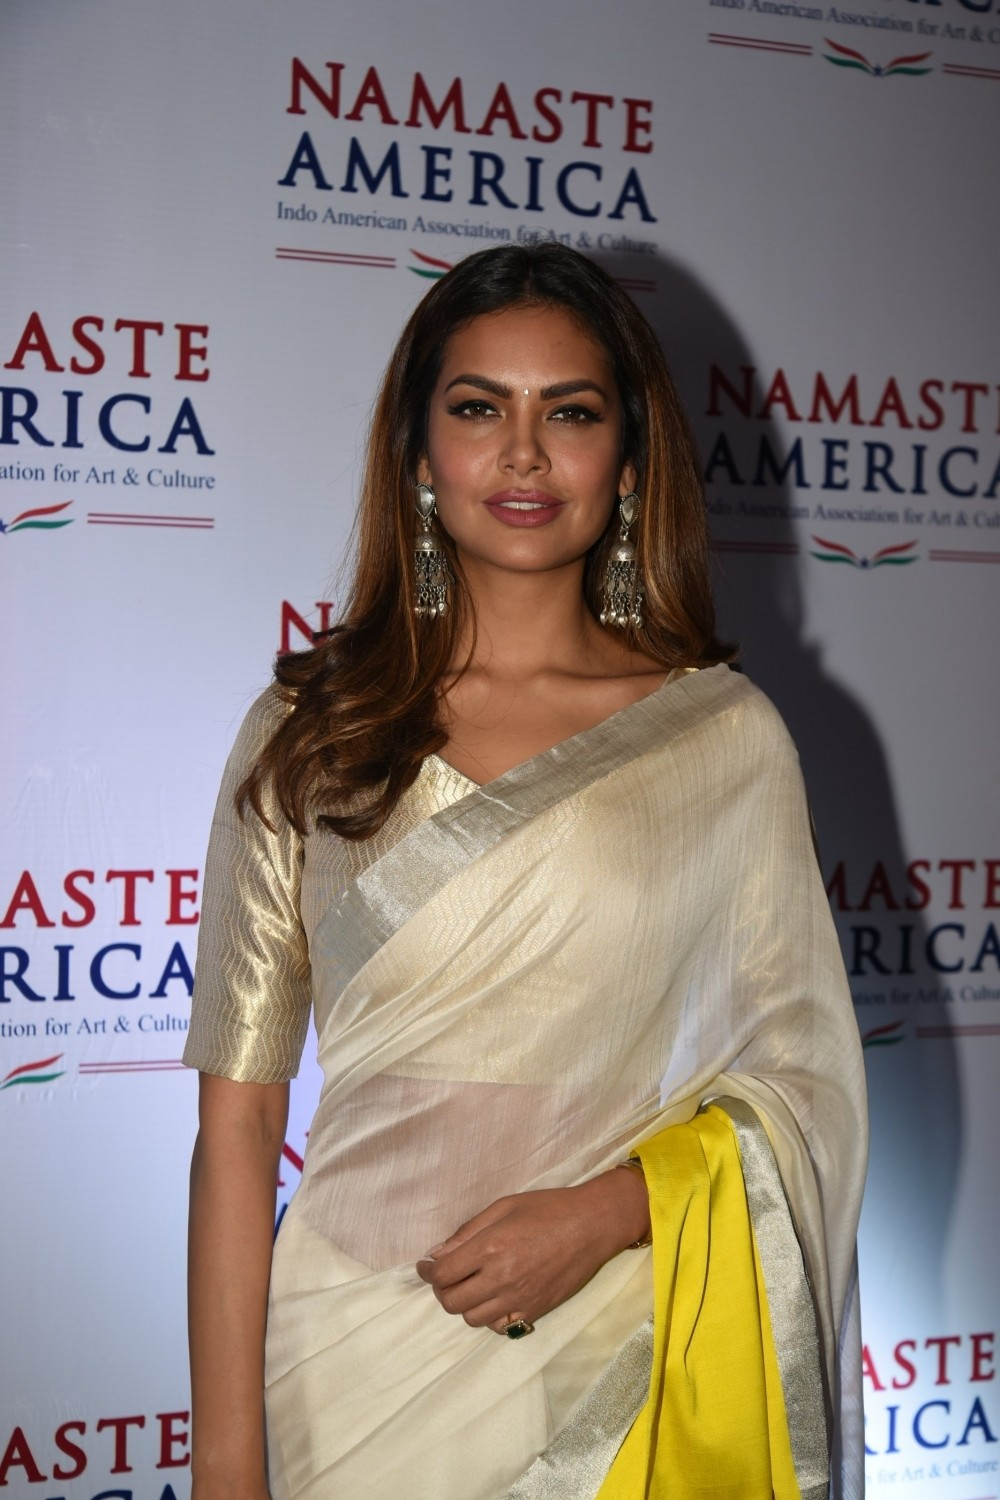 Esha Gupta,Esha Gupta in Saree,Namaste America press meet,Namaste America,Namaste America press meet pics,Namaste America press meet images,Namaste America press meet stills,Namaste America press meet pictures,Namaste America press meet photos